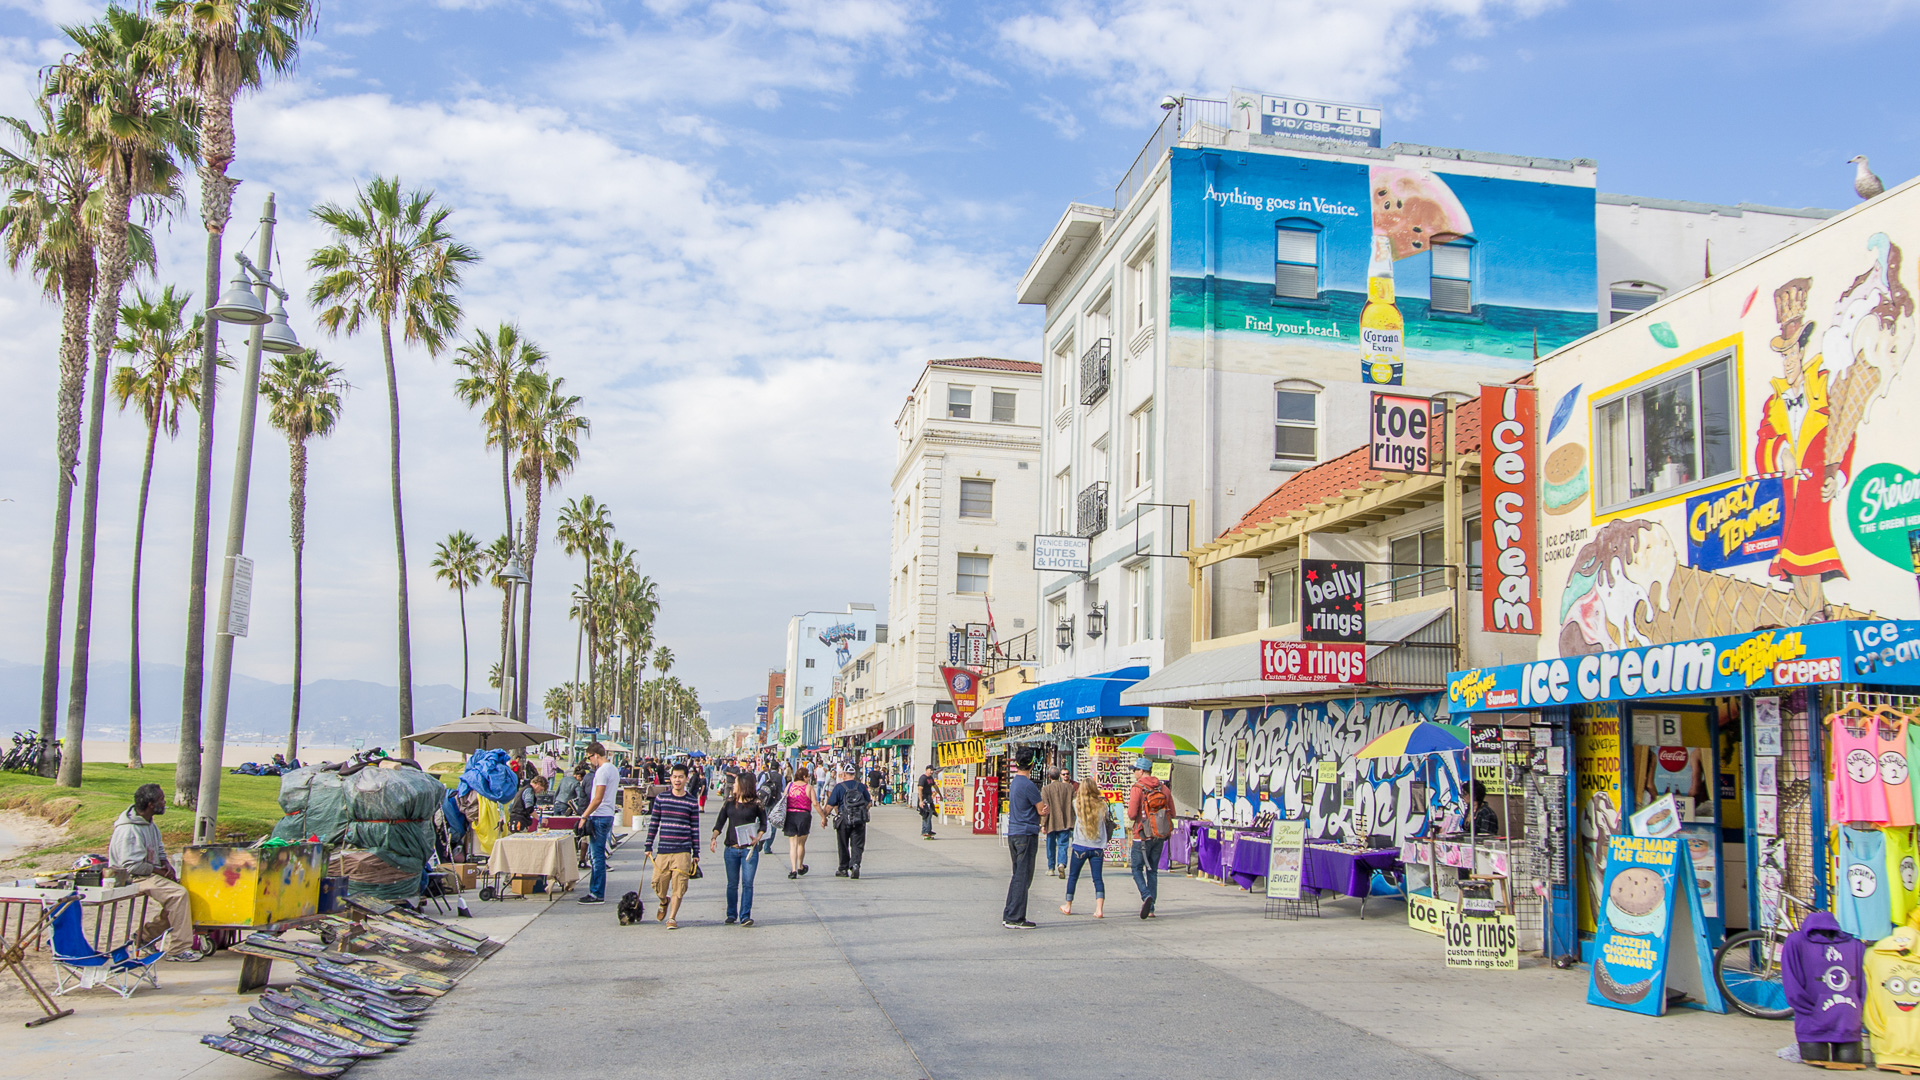 Slide 13 of 32: Meals: $375Drinks (including beer): $59.763-night hotel stay: $386Airfare: $673.86You can find plenty of cheap things to do in Los Angeles during the fall. Strolling Venice Beach is always free. For a less leisurely walk, try hiking through Griffith Park to the Griffith Observatory, which offers free admission and access to telescopes. If you want to see Hollywood stars instead of real stars, use this guide to find celebrities in LA.